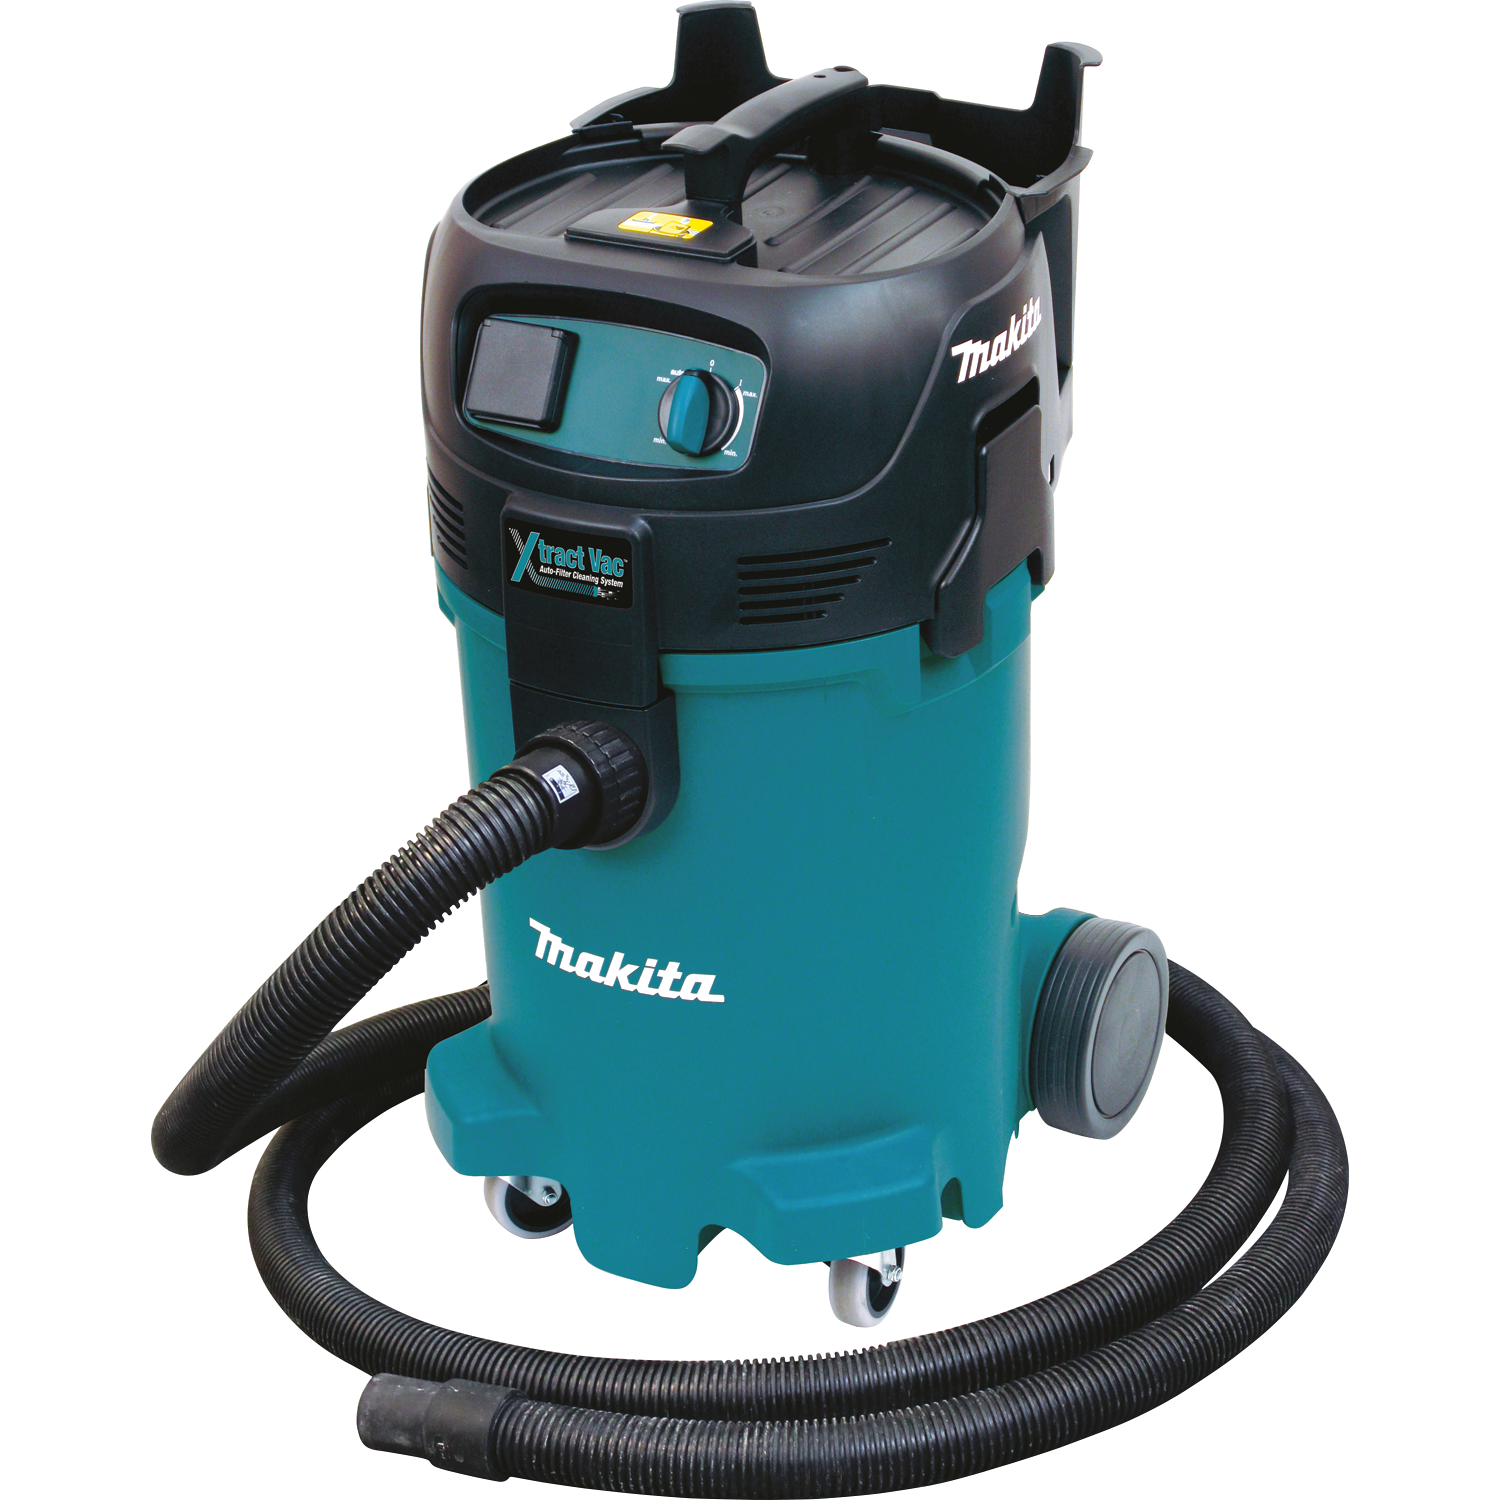 Makita Usa Product Details Vc4710